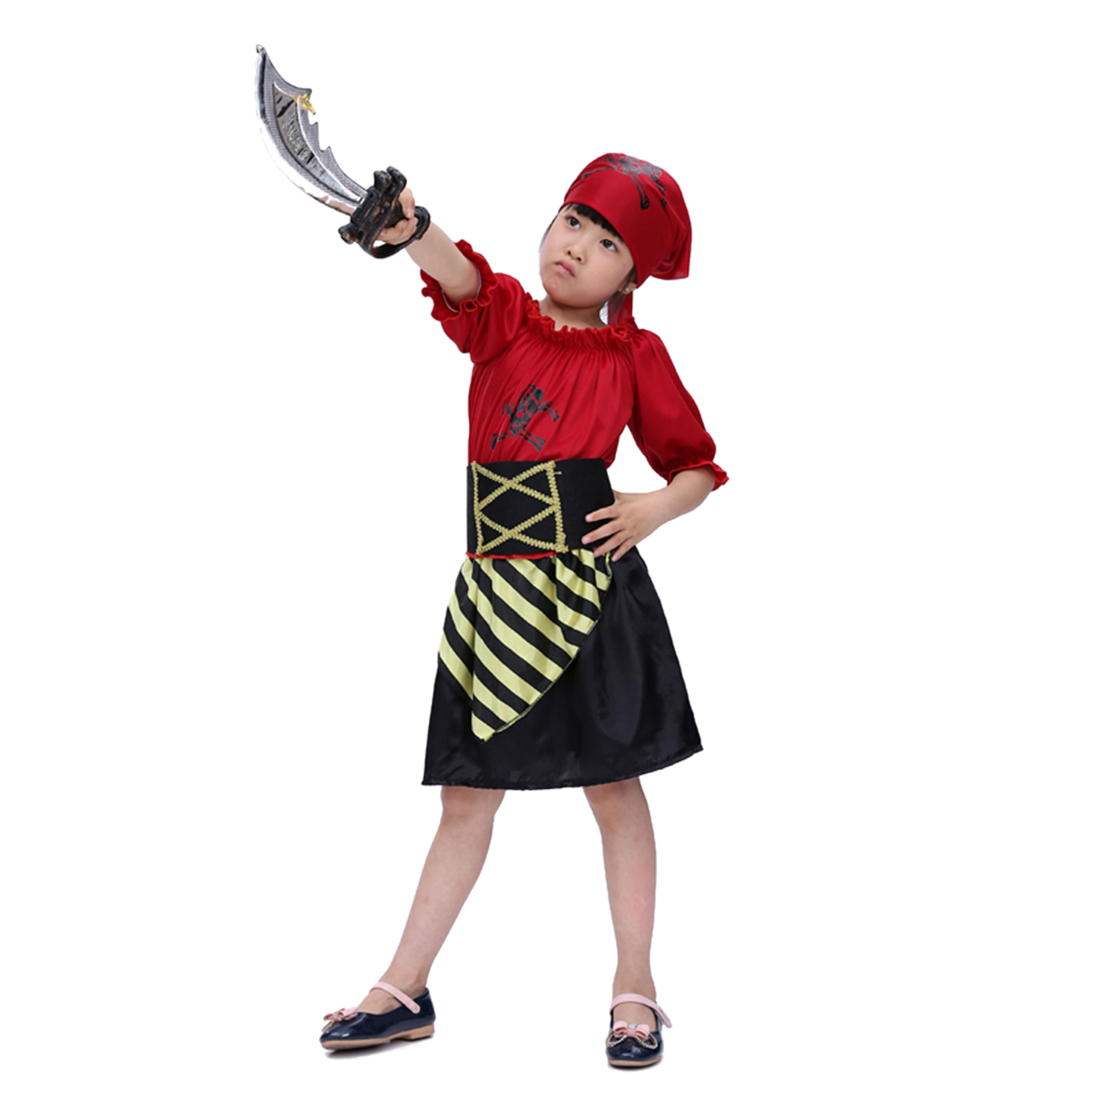 Halloween Pirate Cosplay Suit Girl Red Skull Pirate Costume Set With Pirate Knife For 4-6 Years Old - M L XL